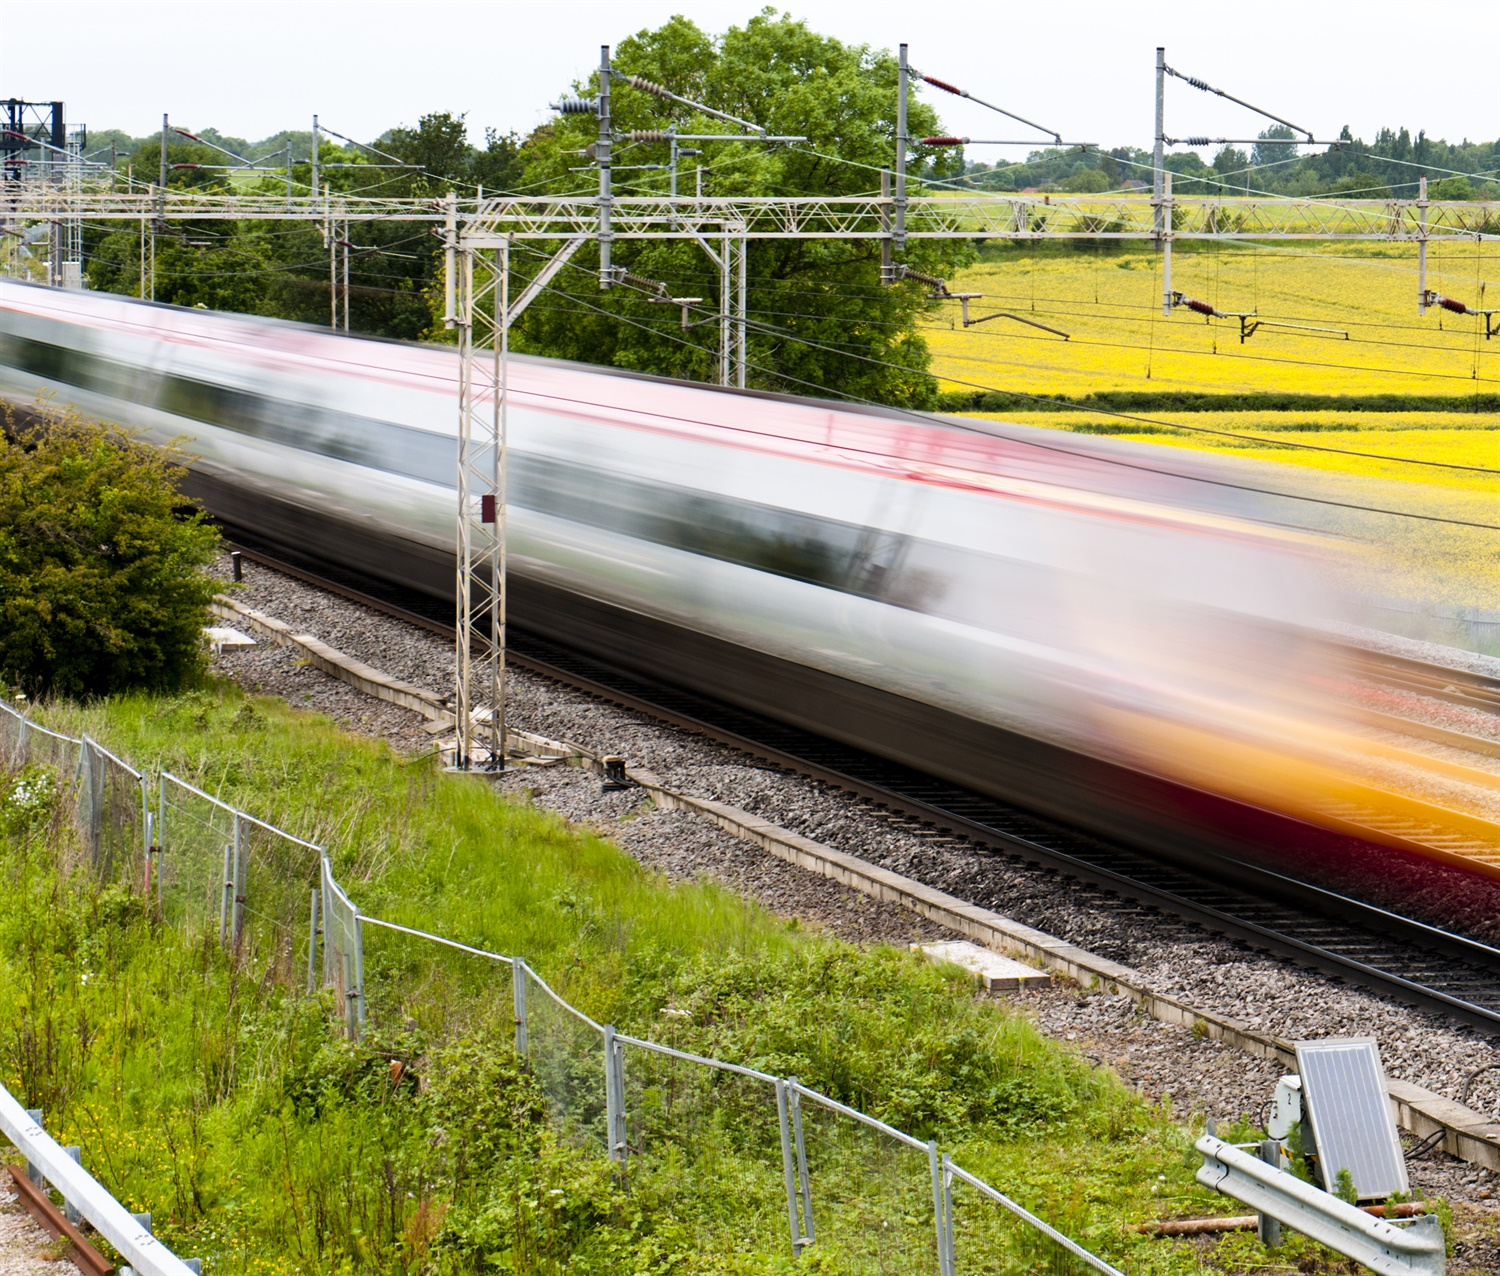 £1.8m government investment on way for HS2 station in East Midlands